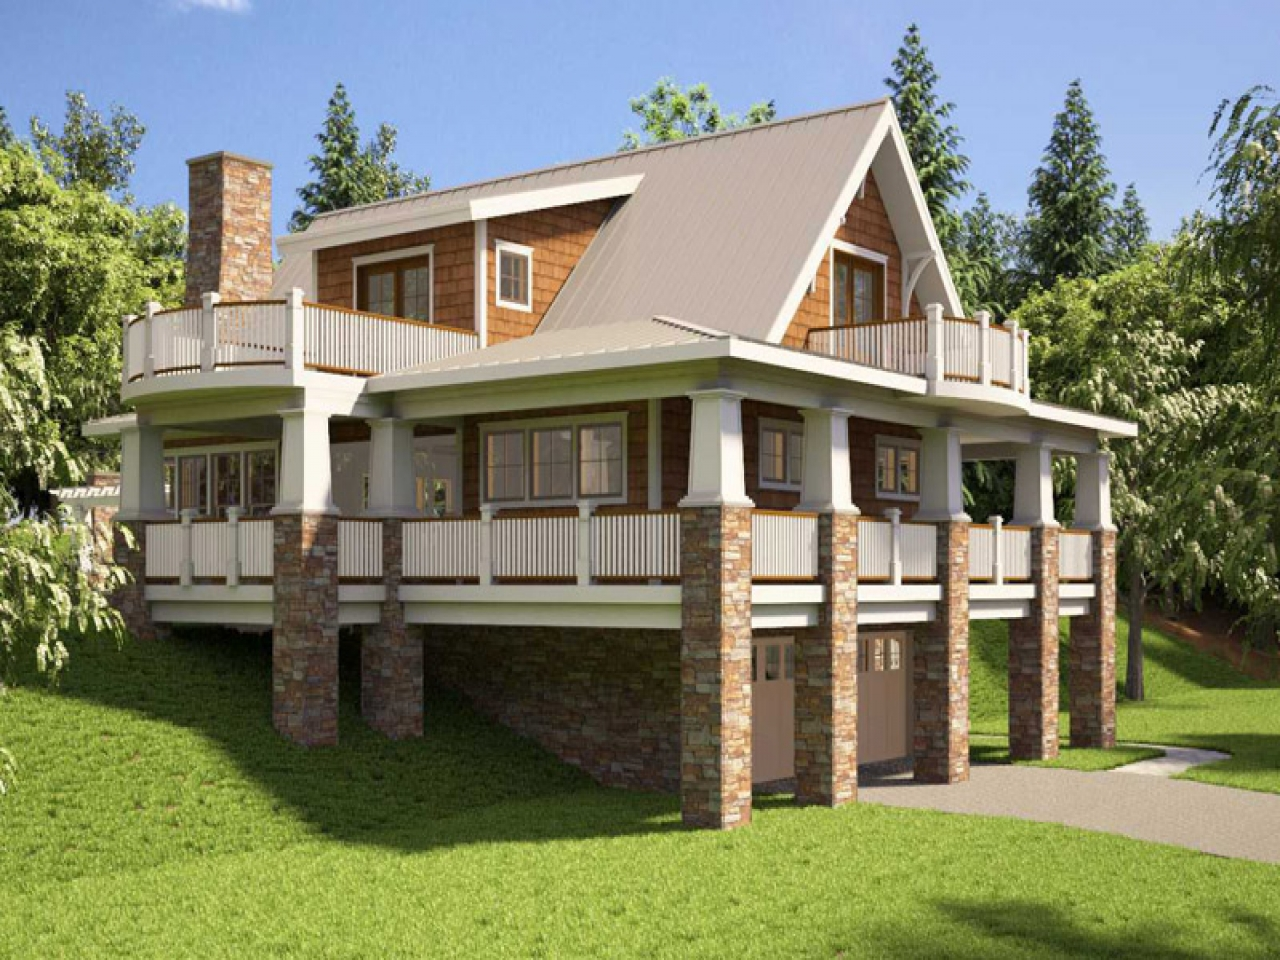 Hillside House Plans With Walkout Basement Hillside House Plans For Sloping Lots Lrg Cf Ada Dfca